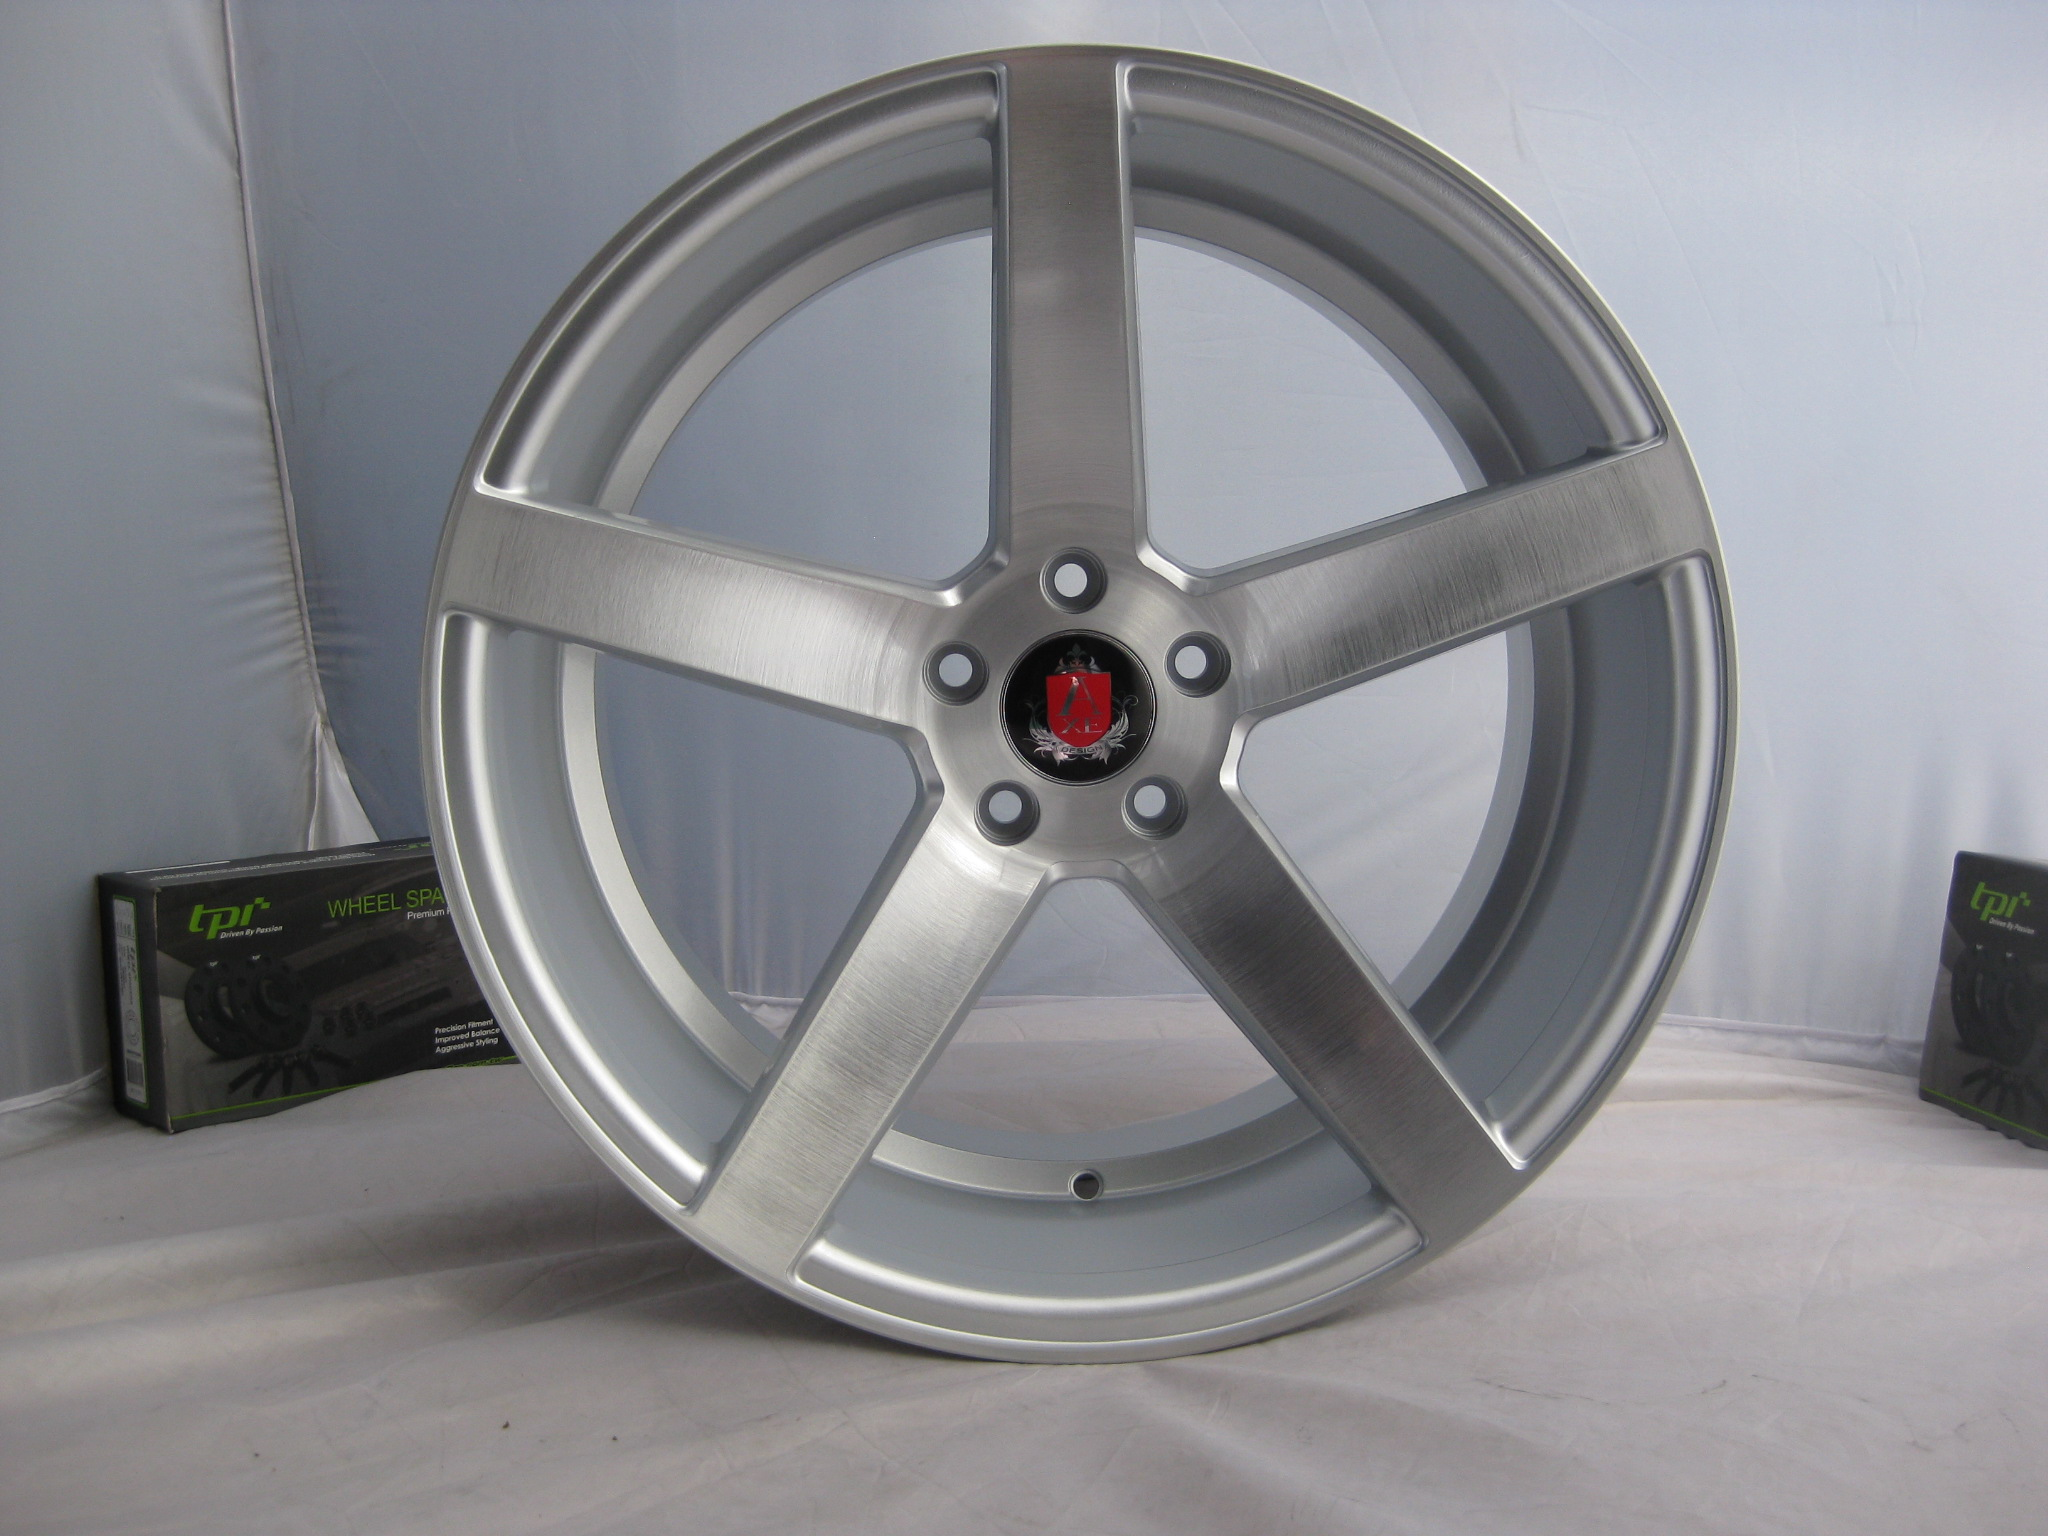 "NEW 19"" AXE EX18 DEEP CONCAVE ALLOY WHEELS IN SILVER/BRUSHED  WITH LARGE DEEP DISH, WIDER 9.5"" REAR"